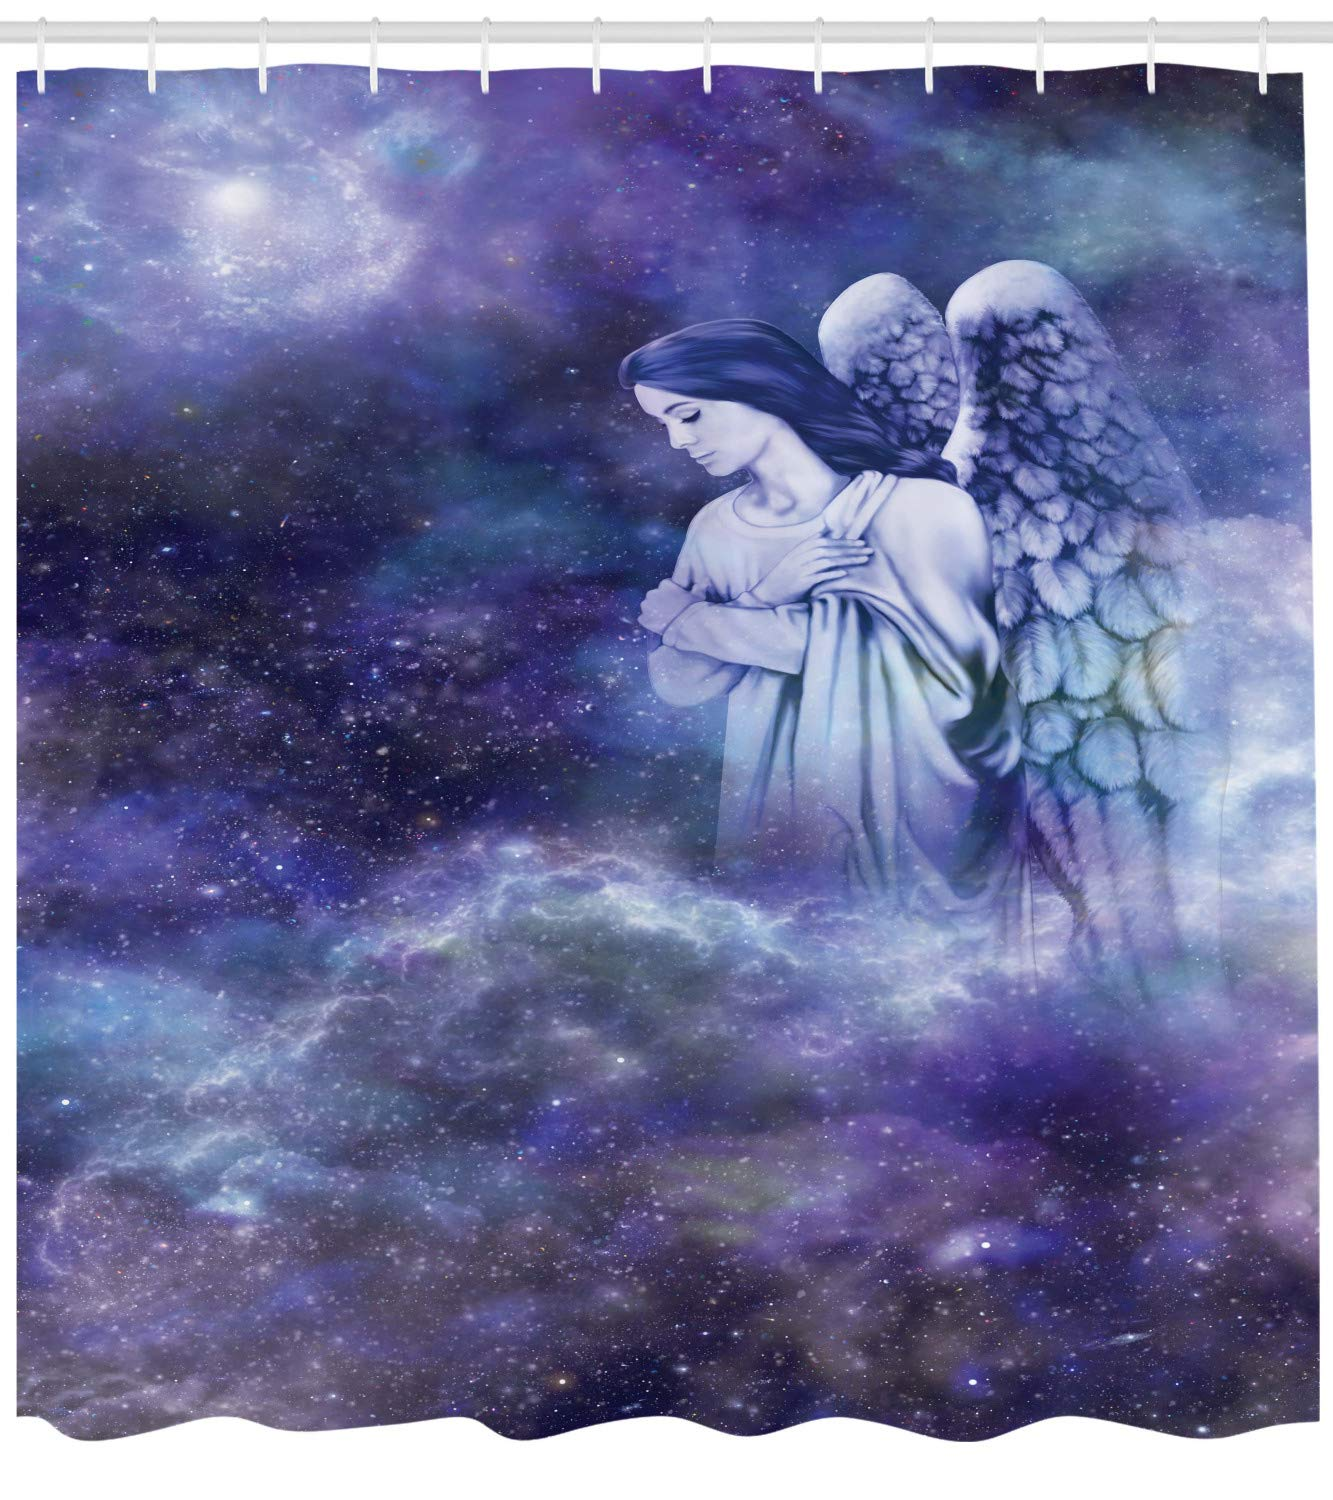 Lunarable Angel Shower Curtain, Guardian Winged Woman Watching Above on Galaxy Background, Fabric Bathroom Decor Set with Hooks, 105 Inches Extra Wide, Dark Lavender Blue Grey Pastel Purple